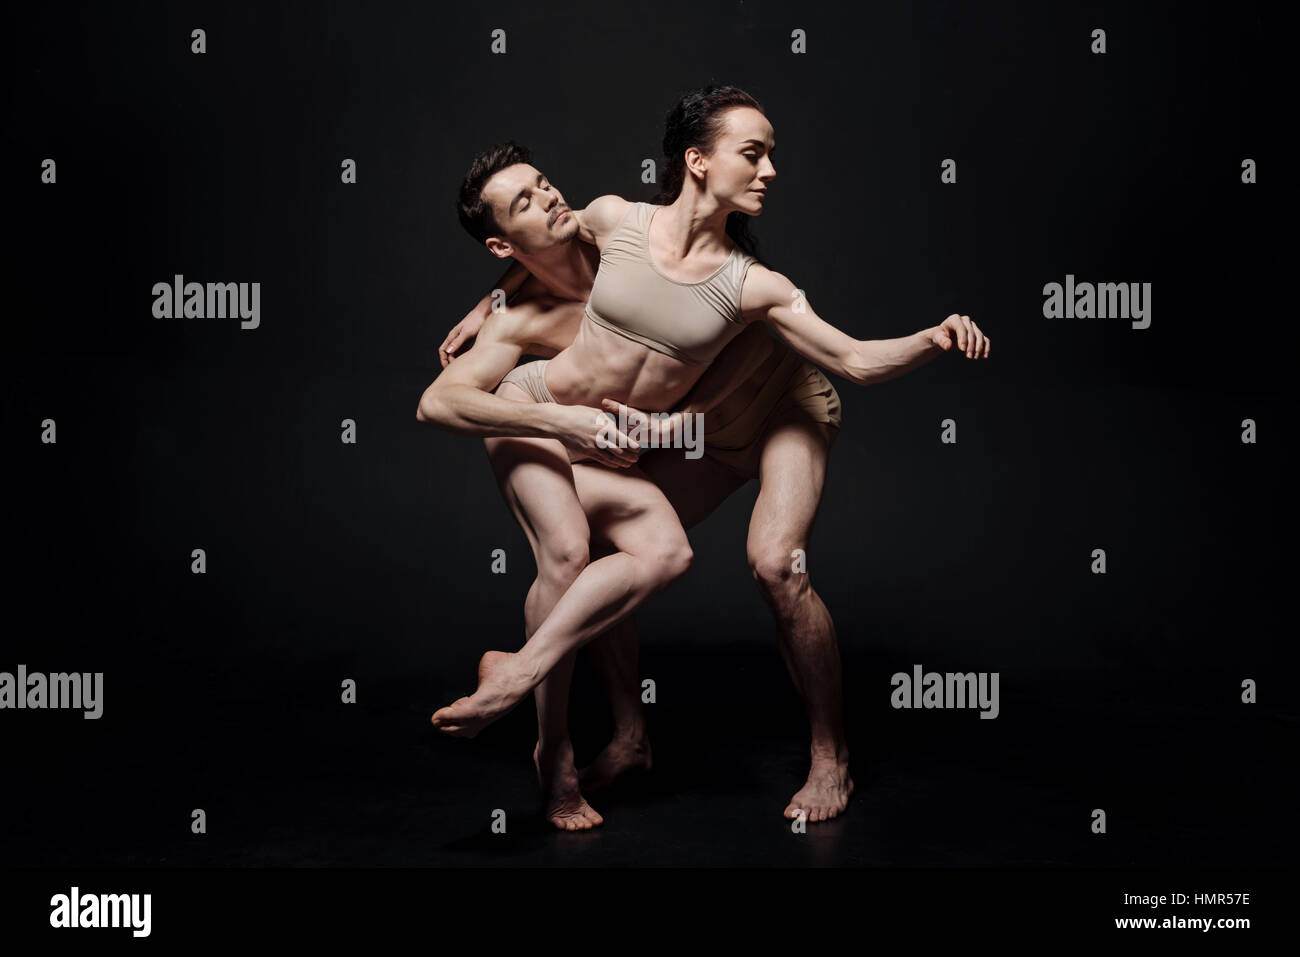 Enthusiastic ballet dancers acting together in the studio - Stock Image